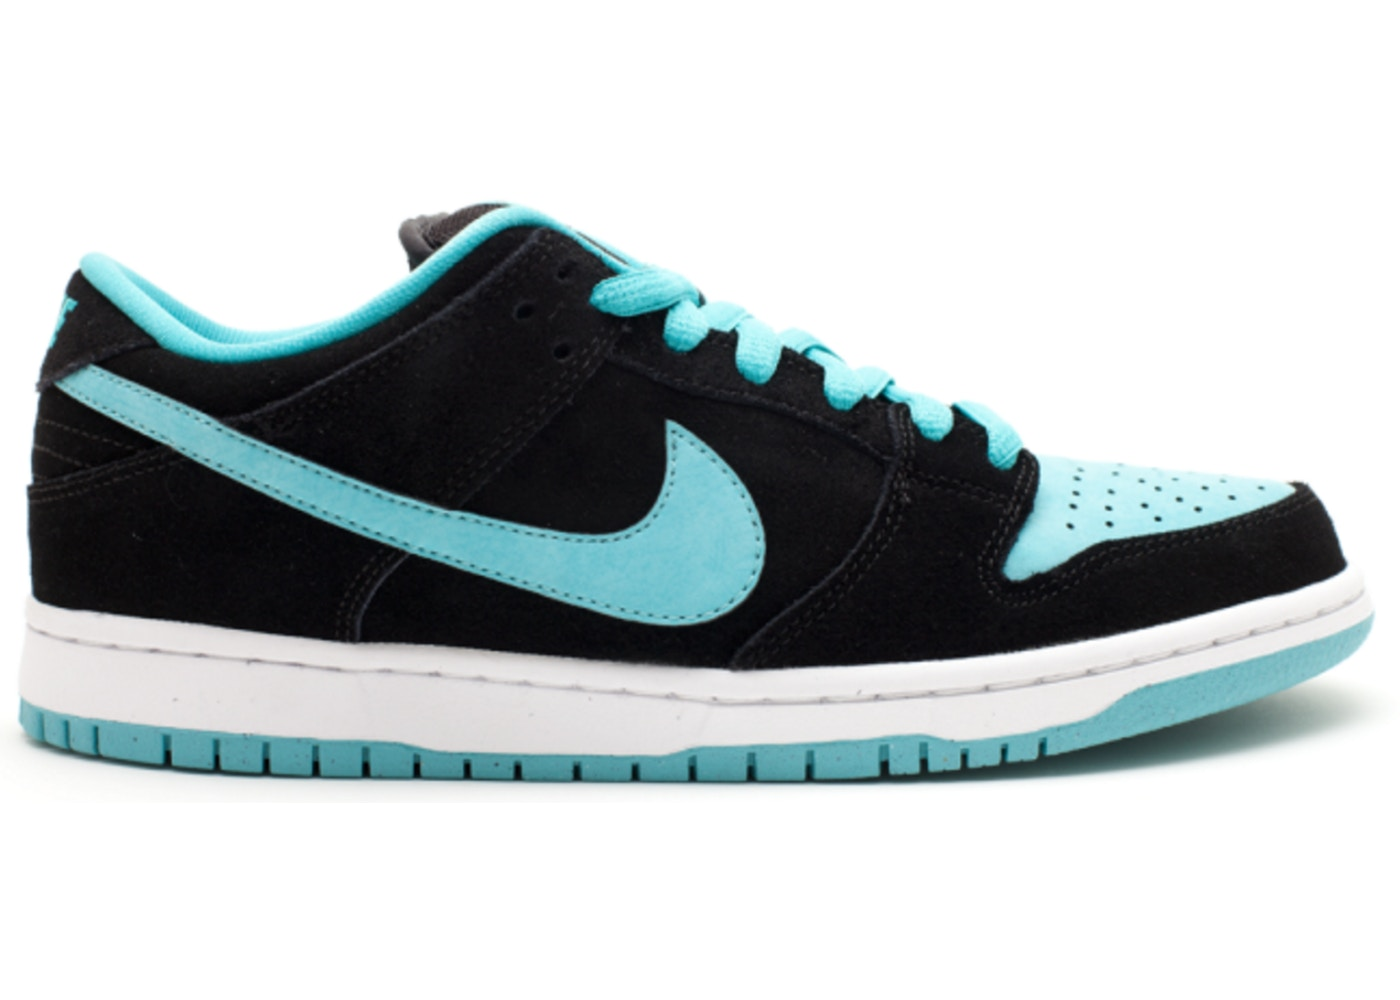 Nike Dunk SB Low Clear Jade - 304292-030 de75508d30